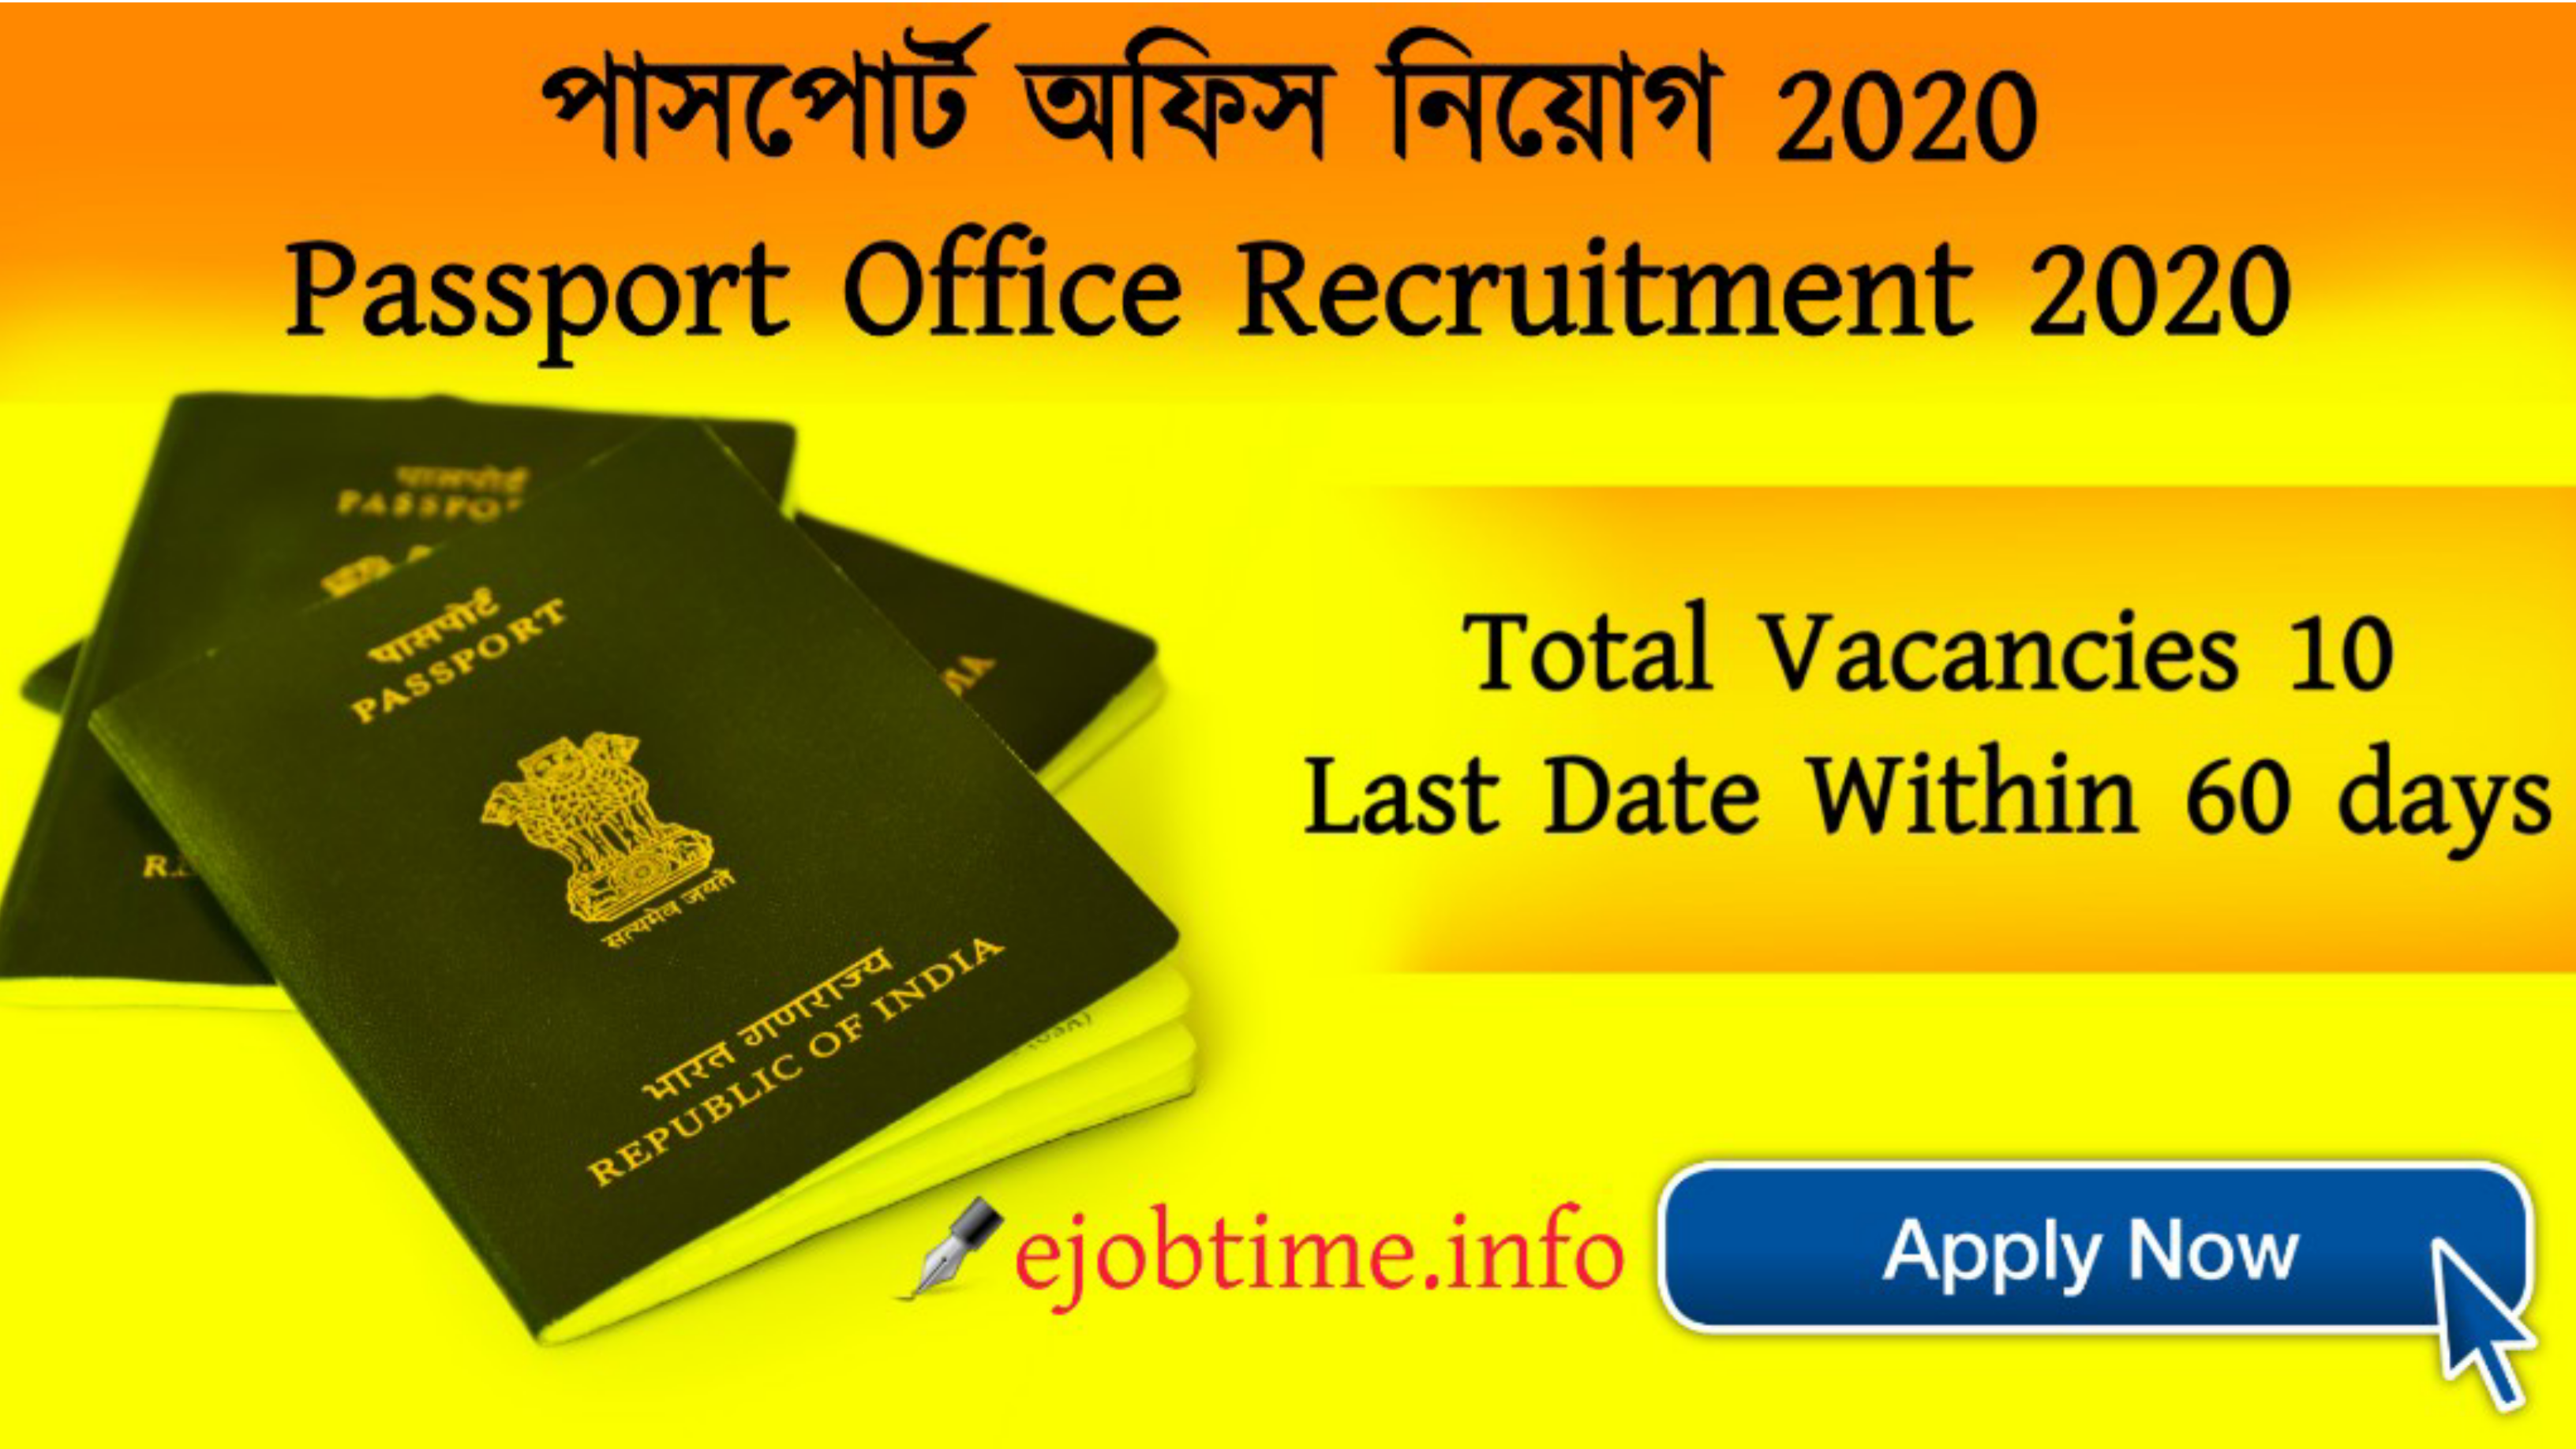 Passport Office Recruitment 2020